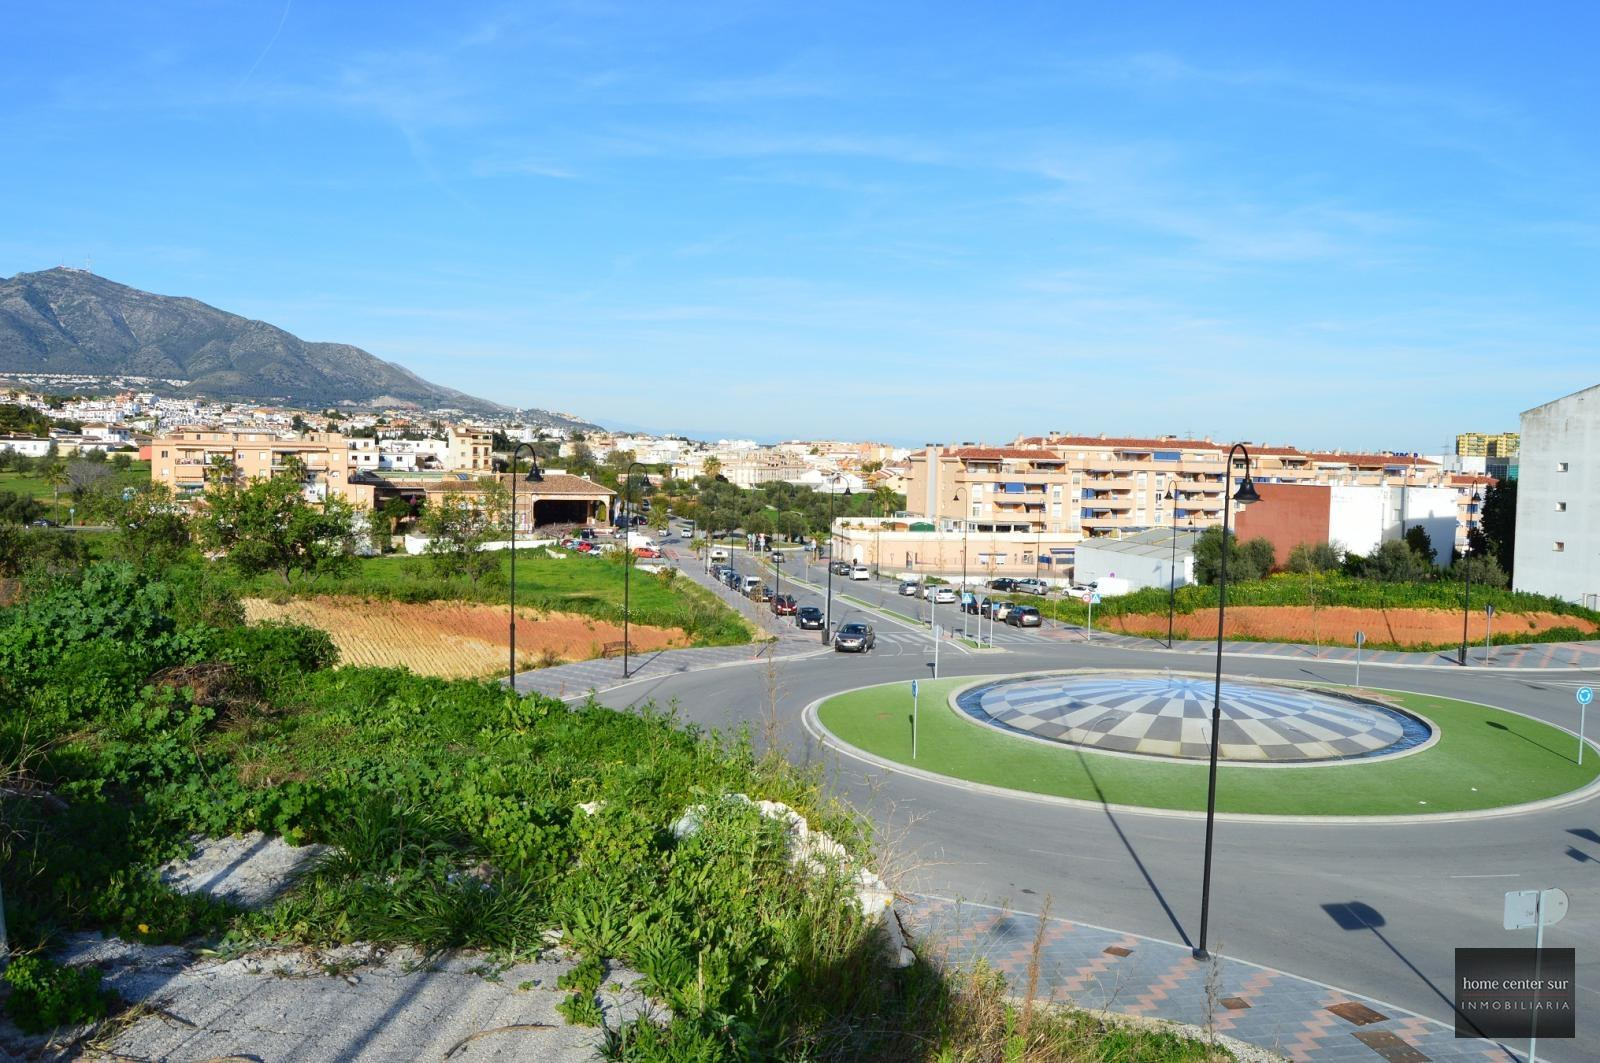 Building Site for sale, new in Avenida Maria Zambrano (Mijas Costa), 3.572.000 €